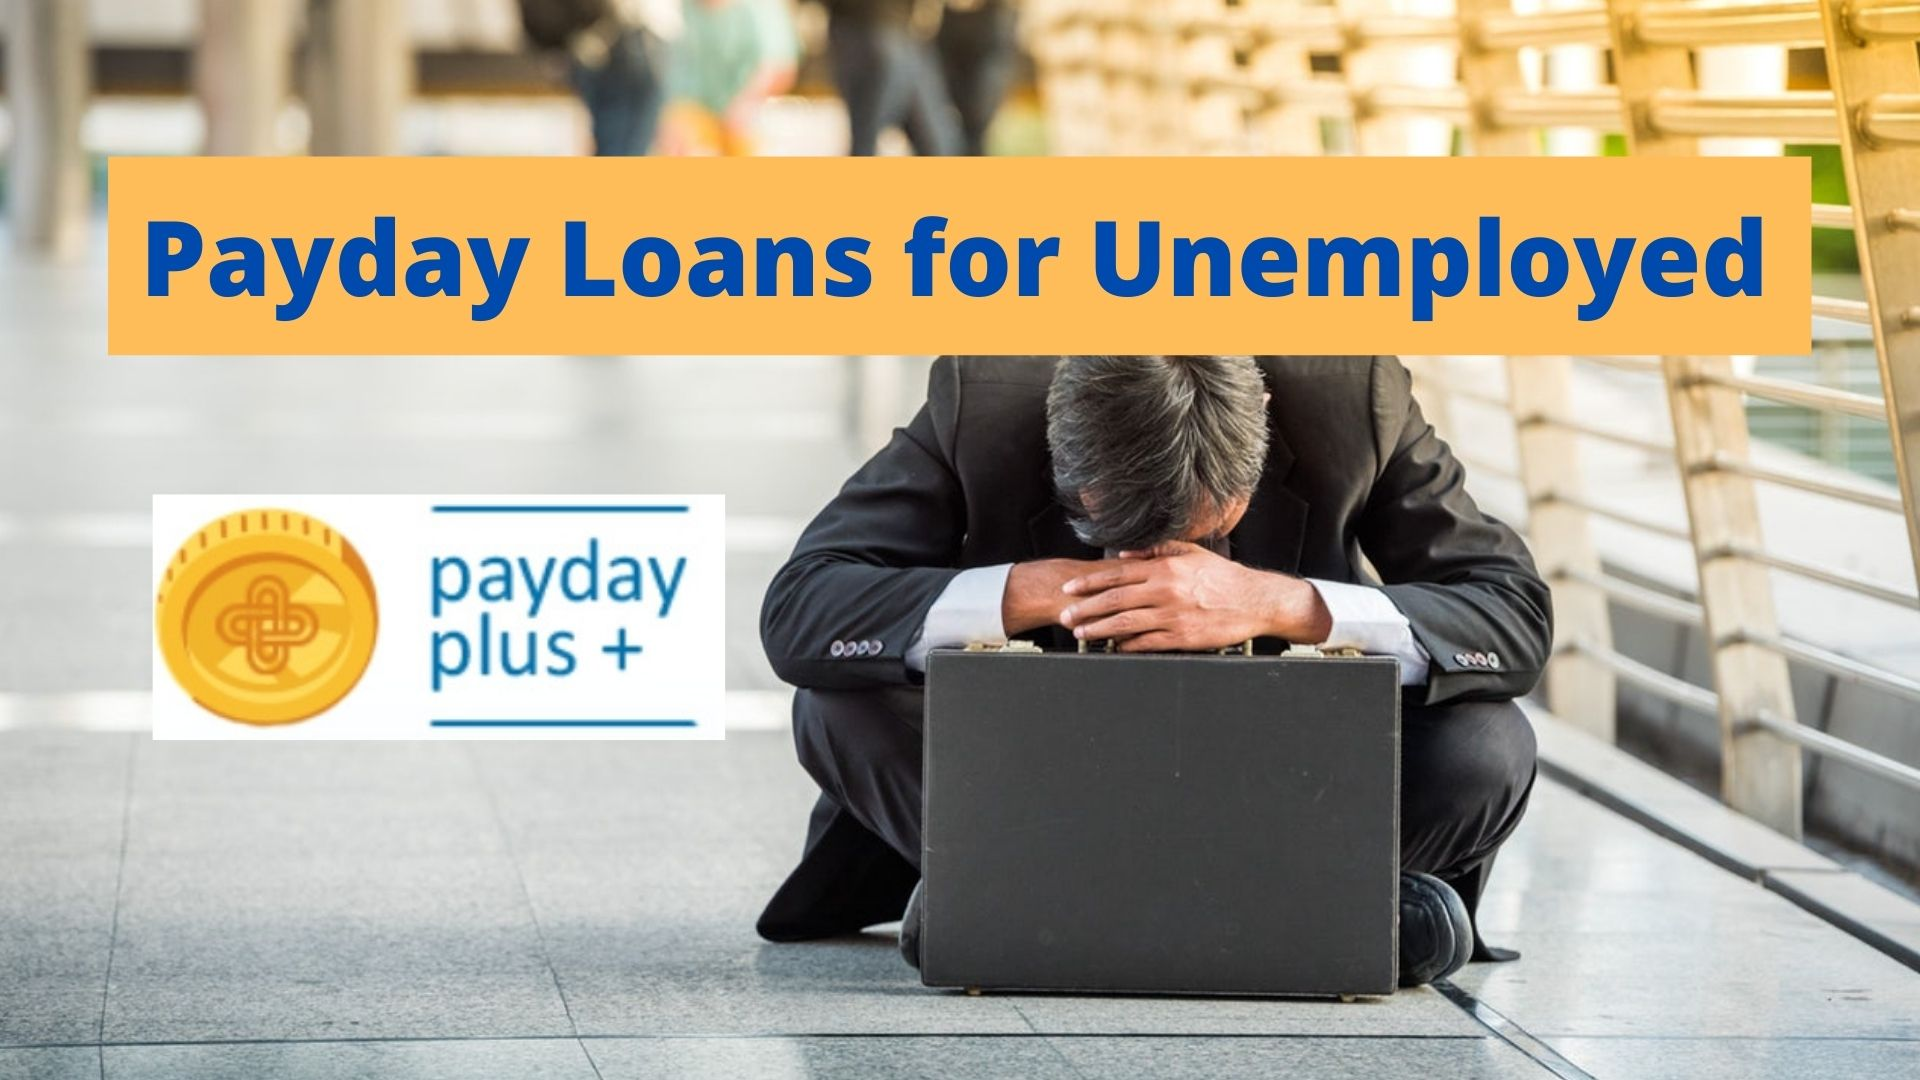 Emergency Payday Loans for the Unemployed